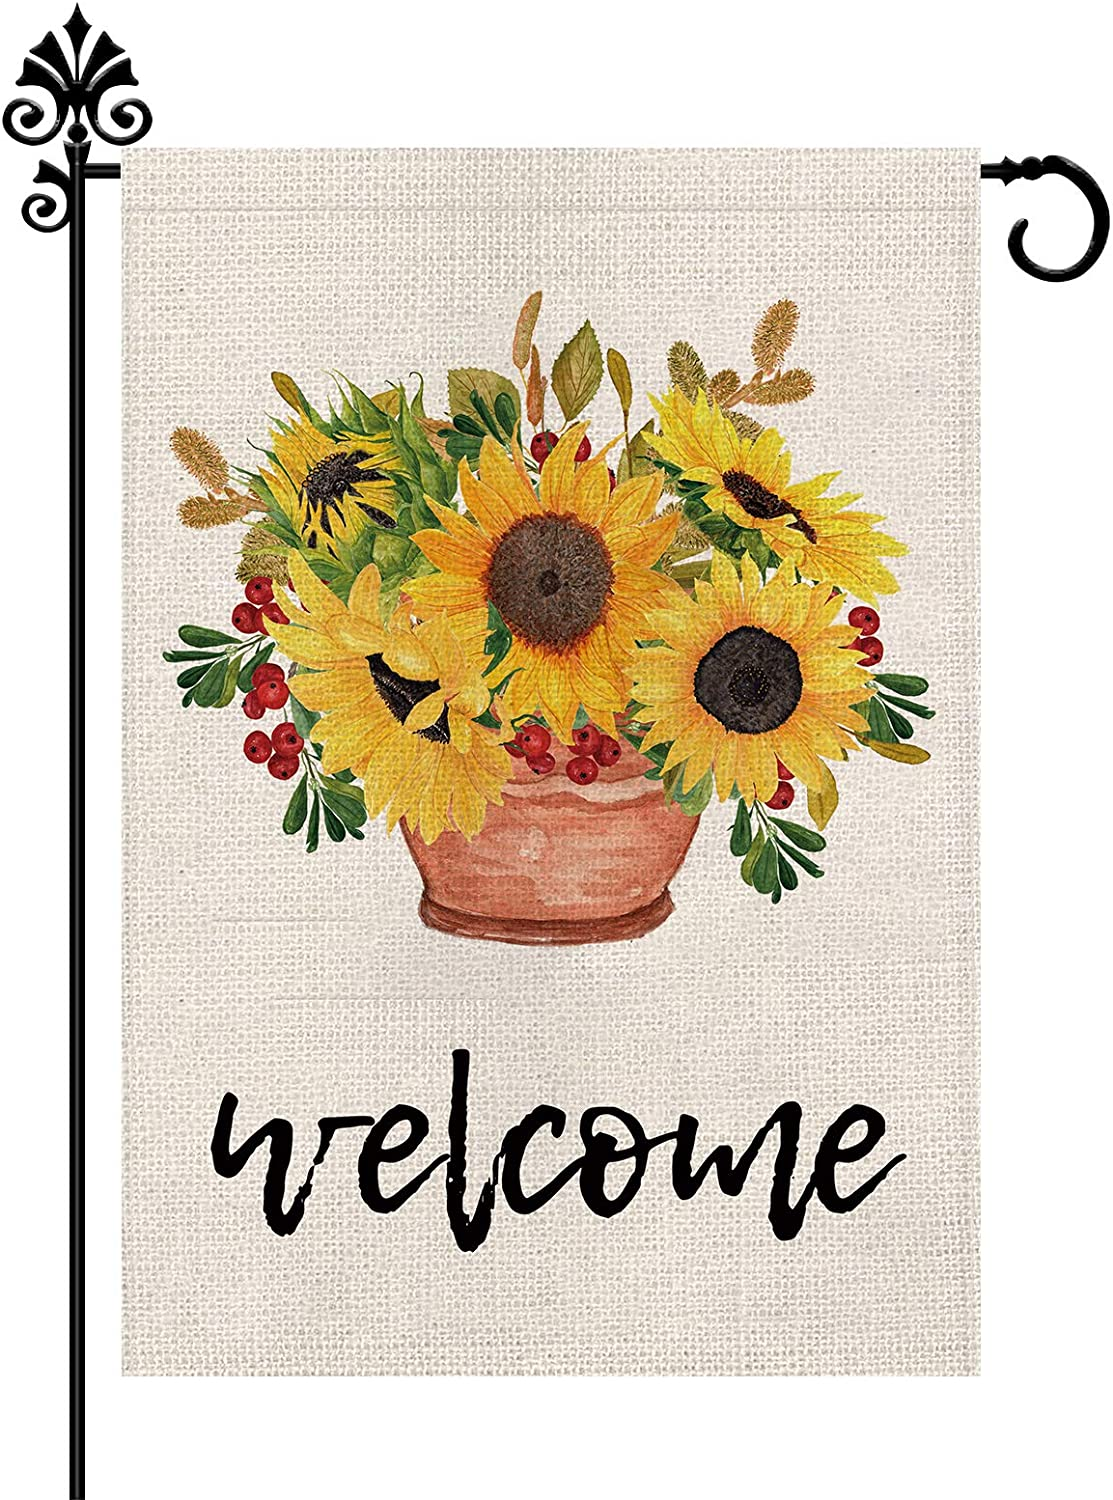 Sunflower Garden Flag Welcome Summer Holiday Outdoor Decorations Double Sided Vertical Burlap Farmhouse Yard Decor 12.5 x 18 Inch